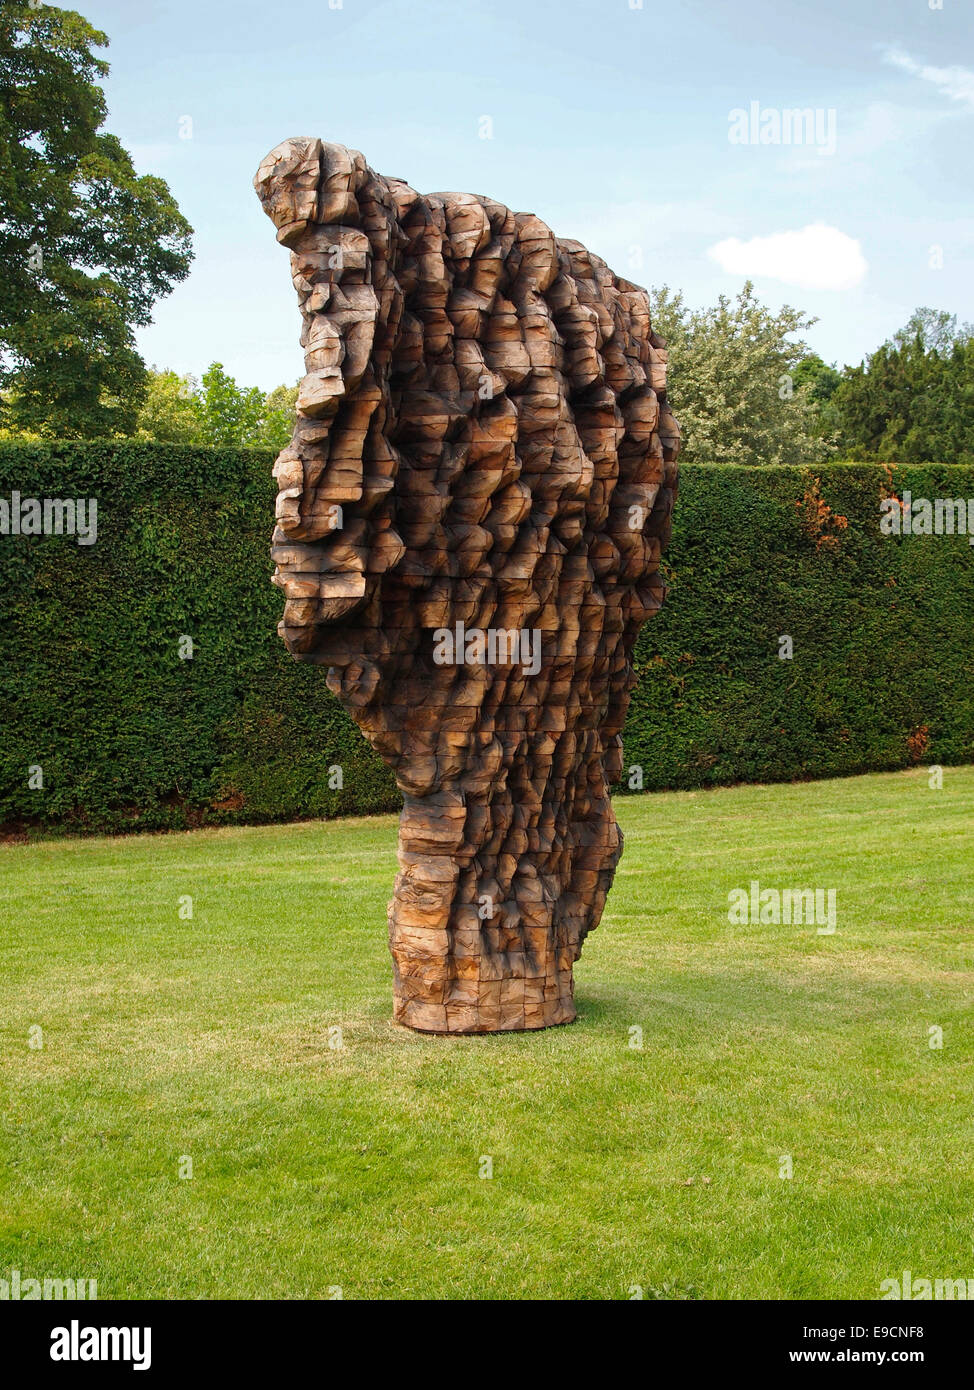 Scratch, a sculpture (2013-4) by Ursula von Rydingsvard at an exhibition of her work at the Yorkshire Sculpture - Stock Image